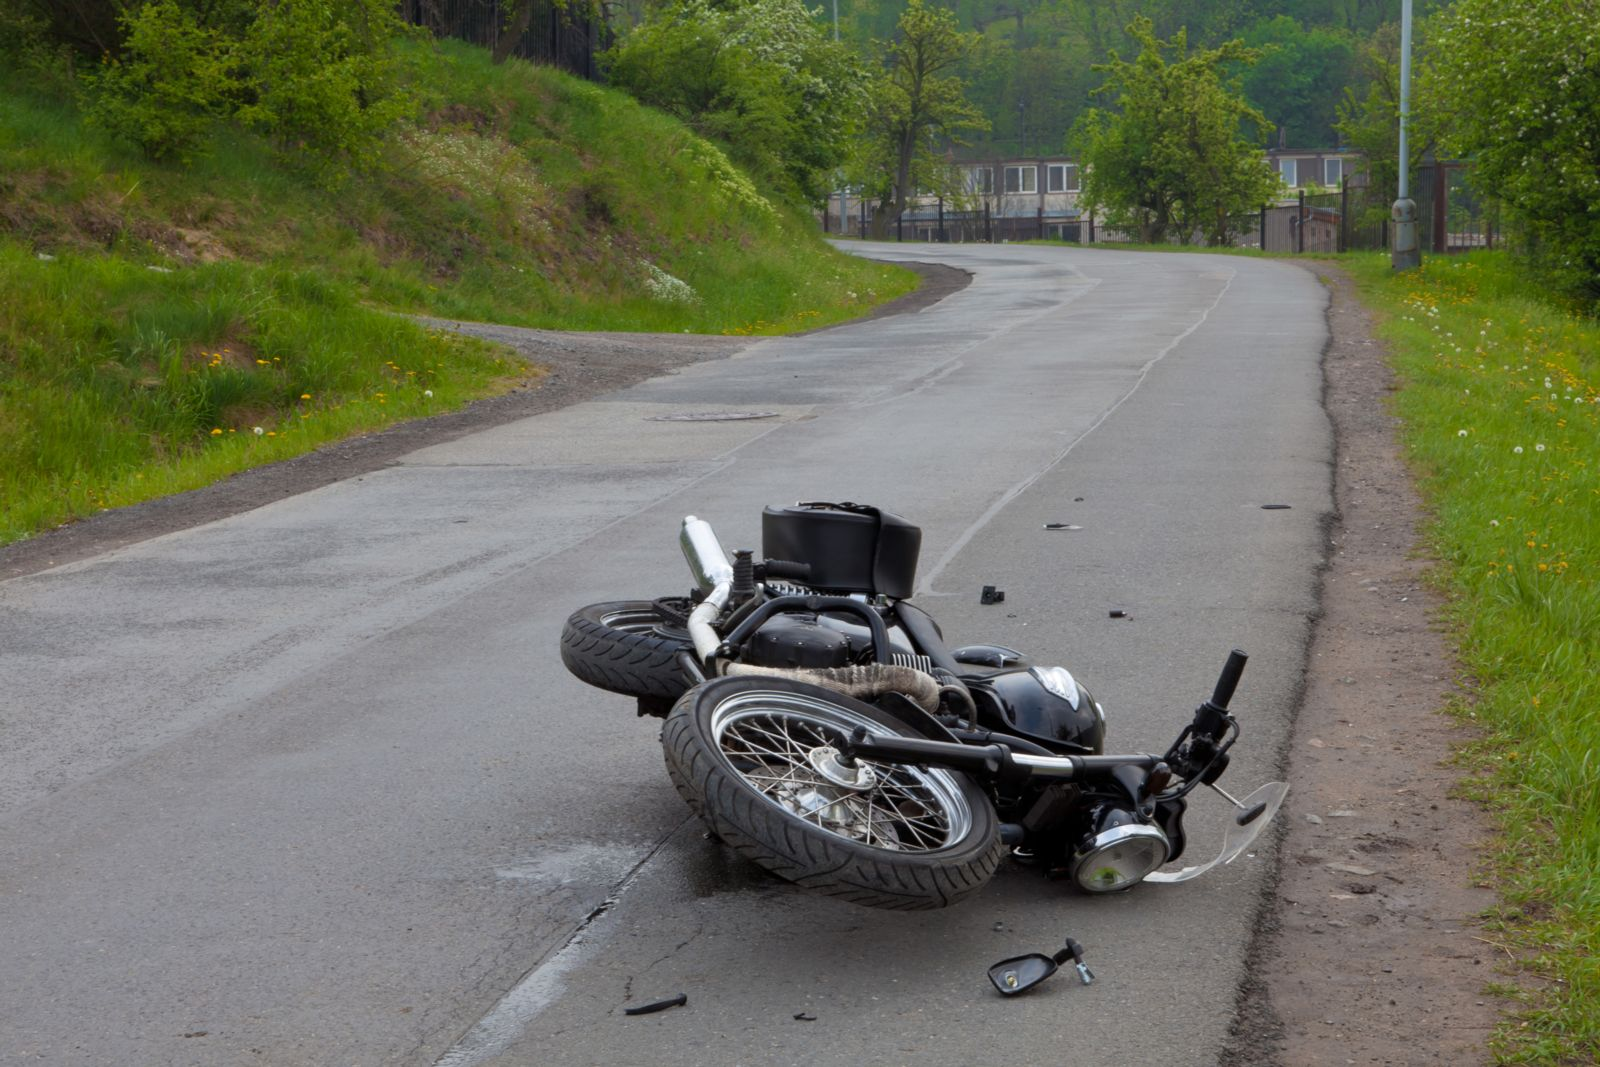 Dutch national dies in motorcycle accident